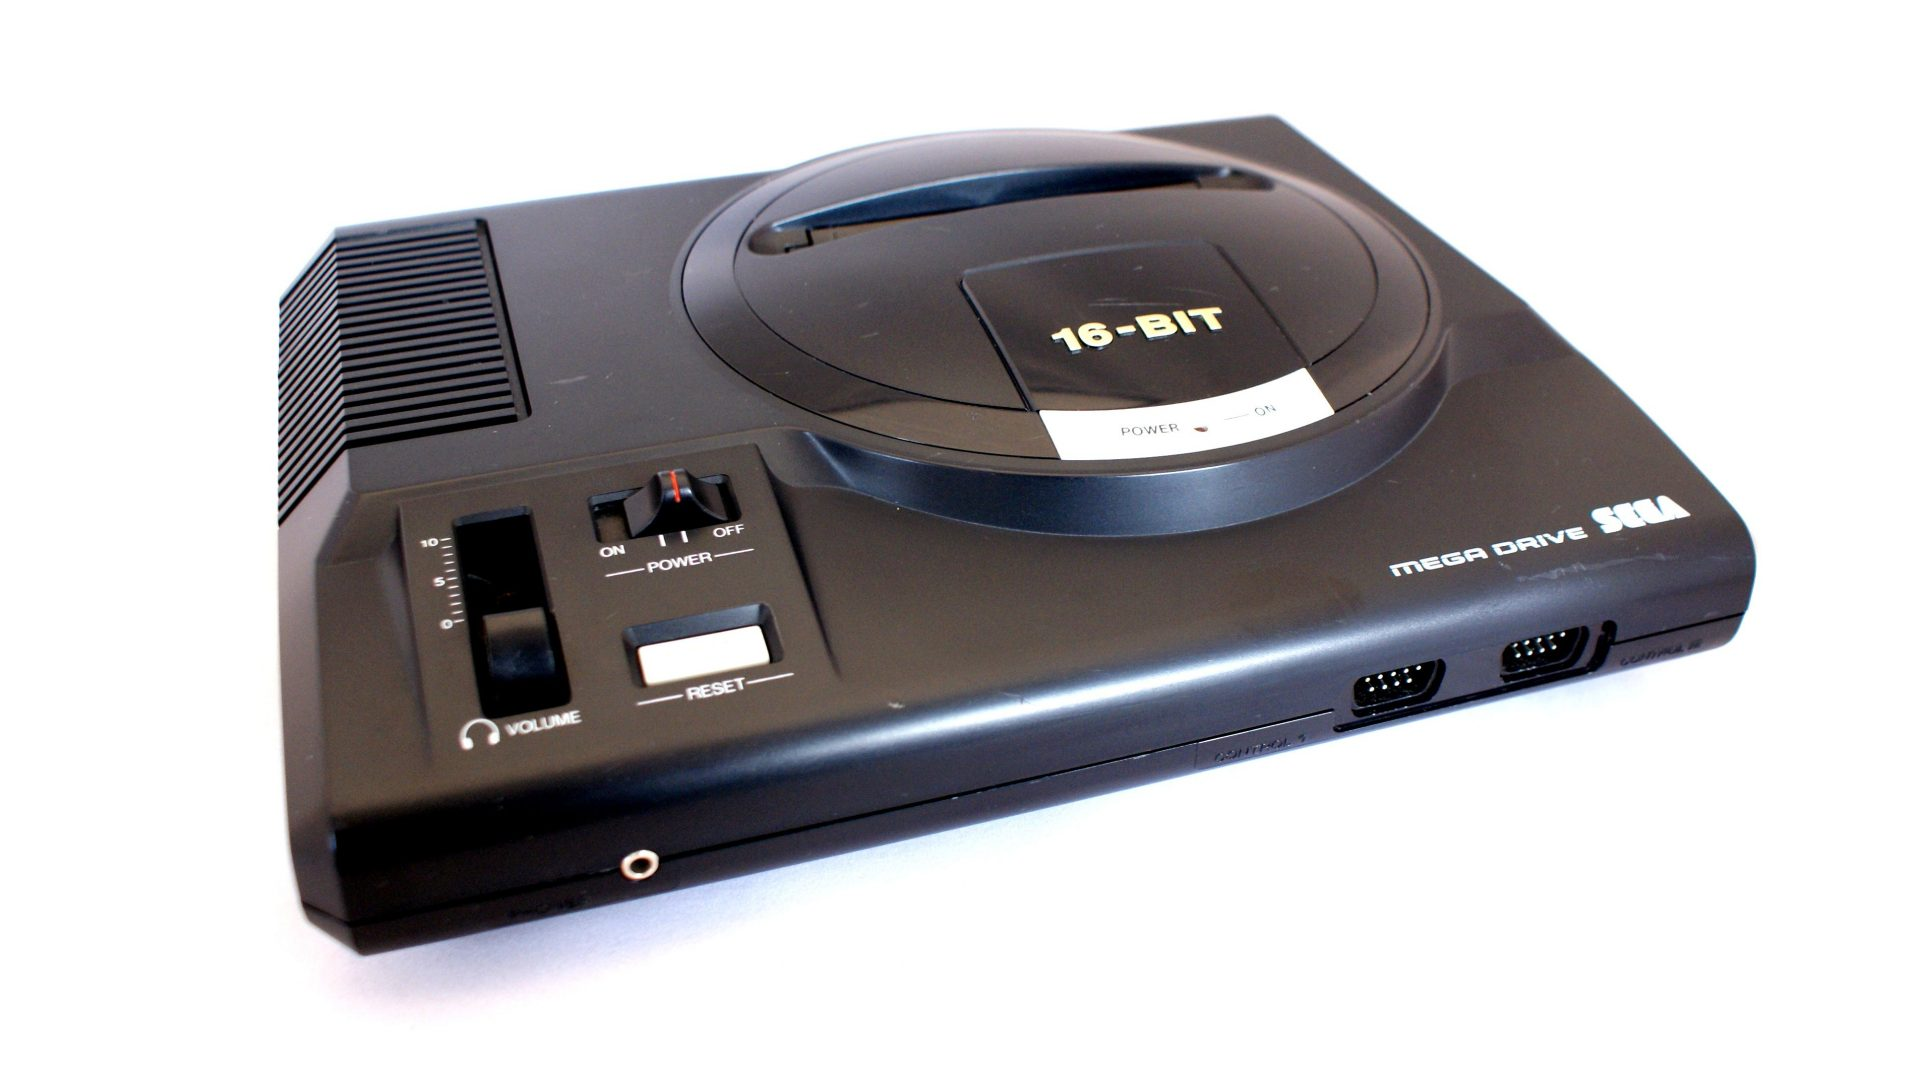 The Sega Mega drive in all its glory.